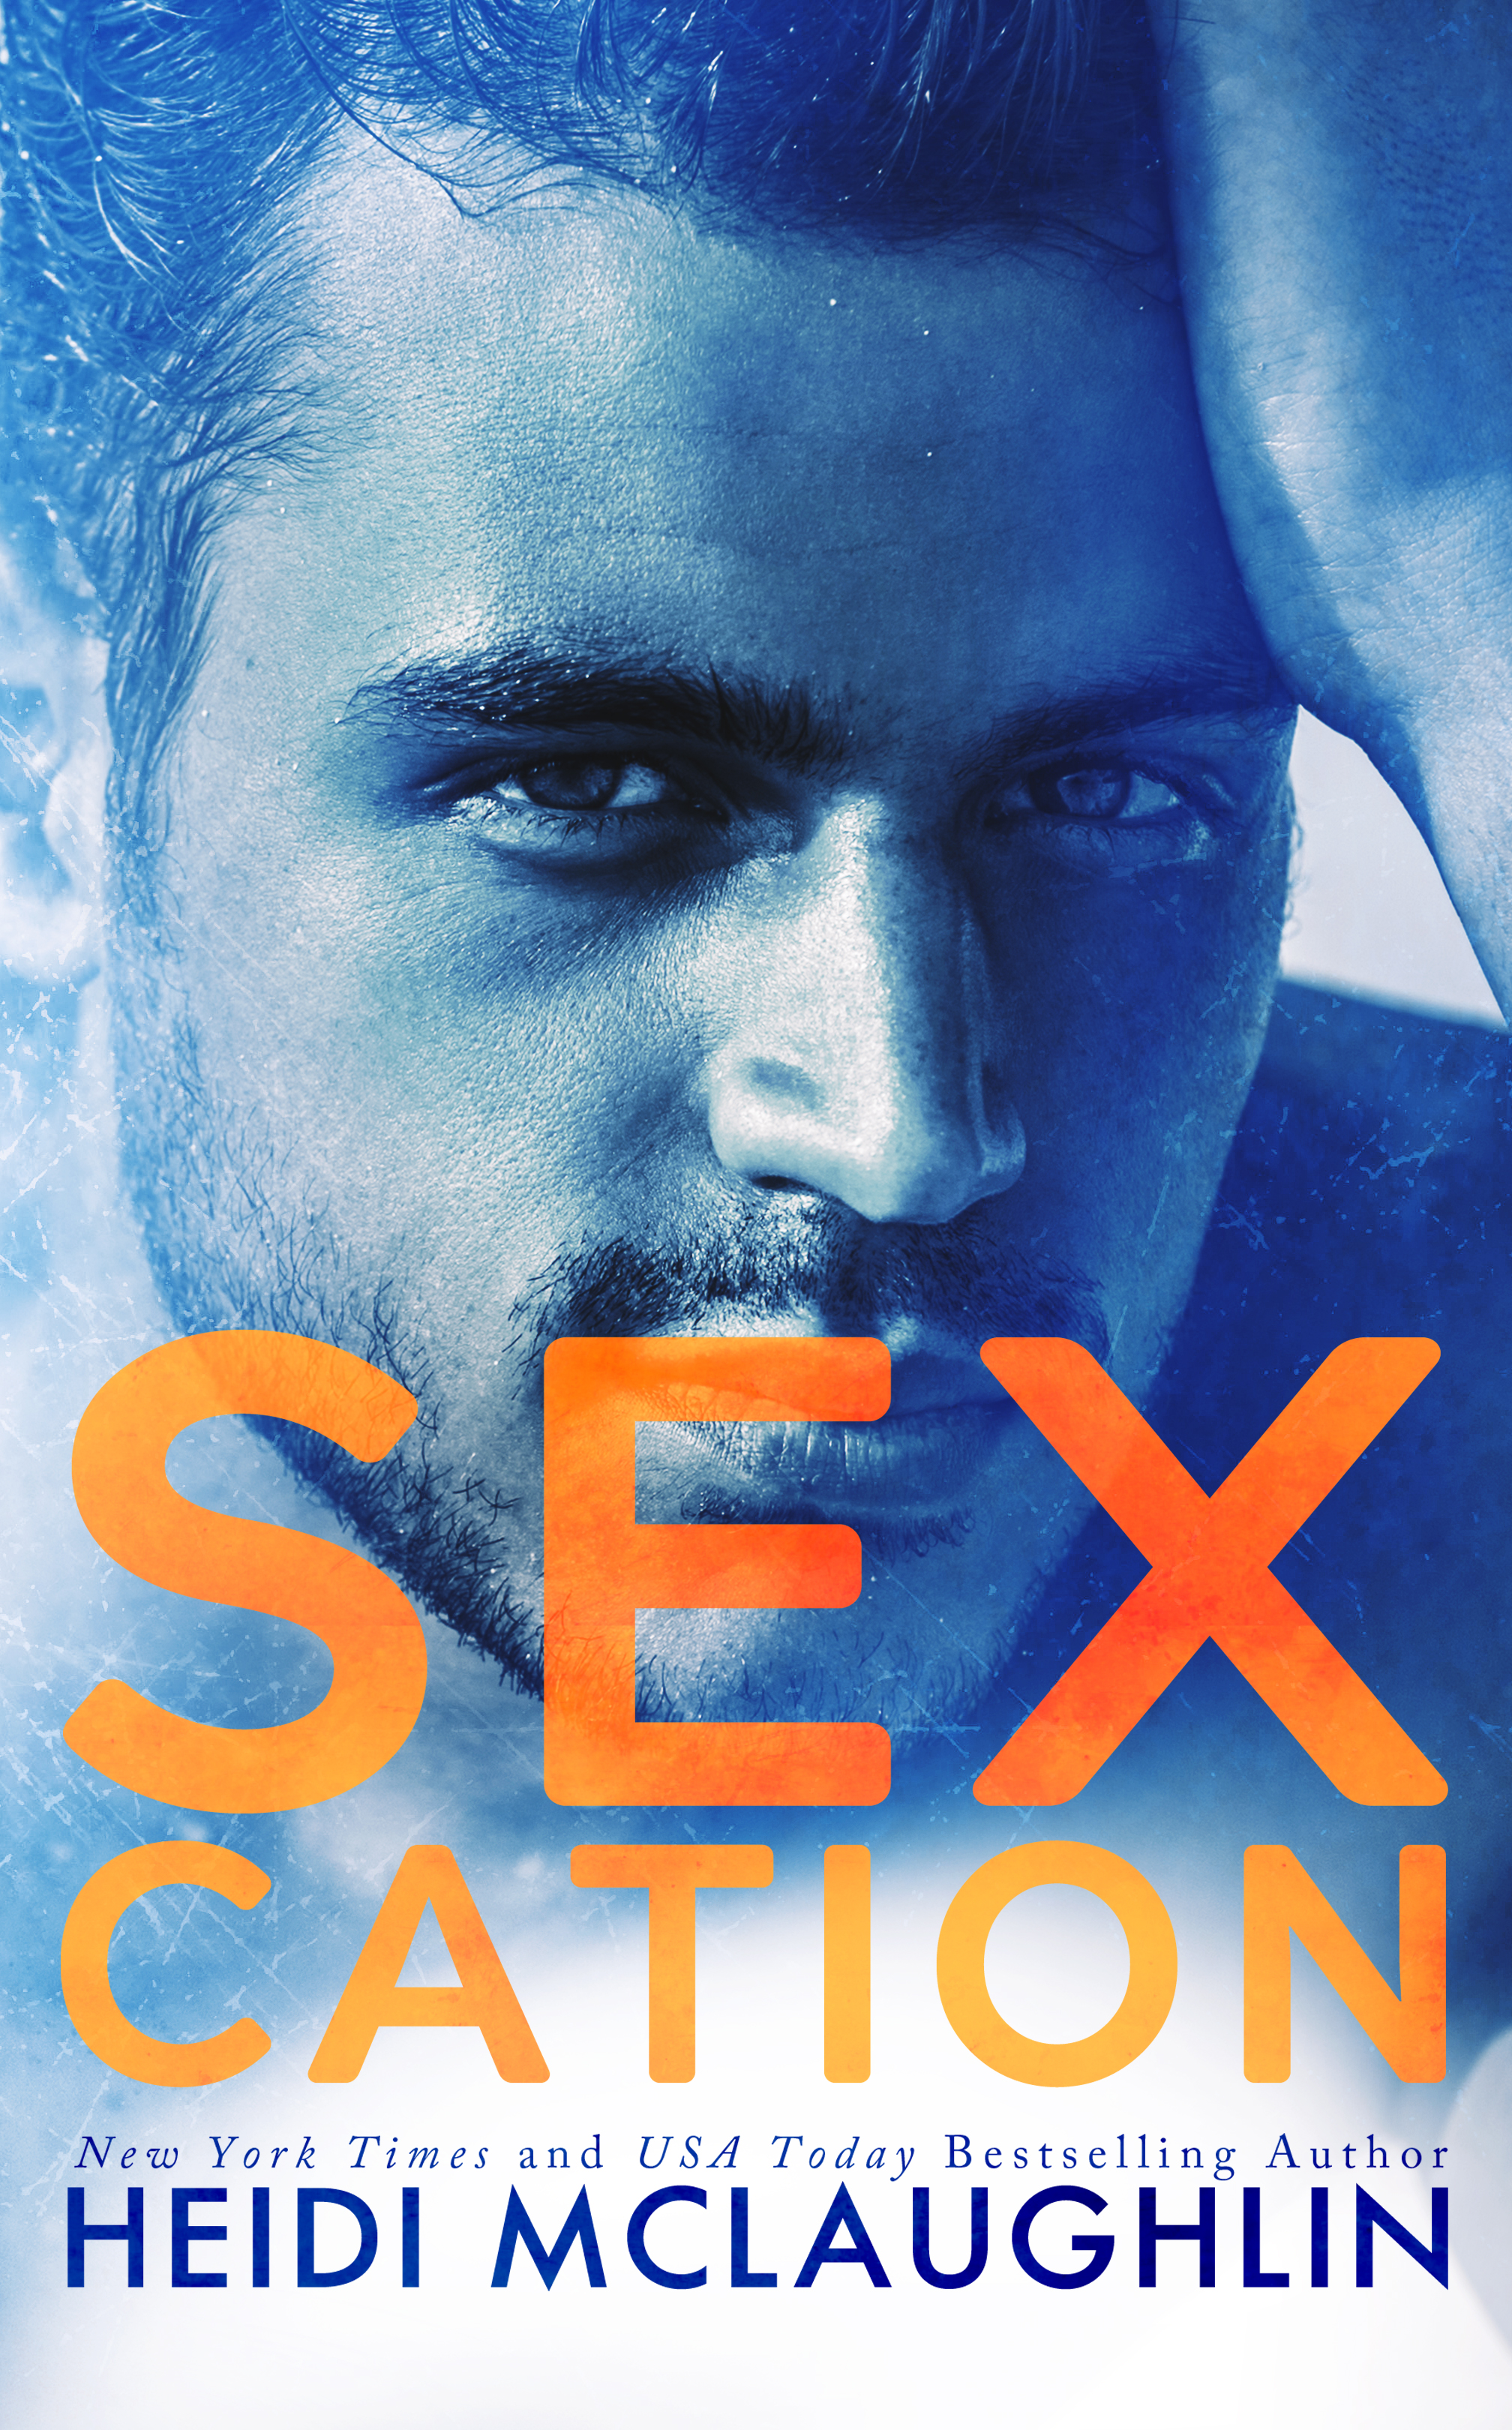 Do you need a SEXCATION?